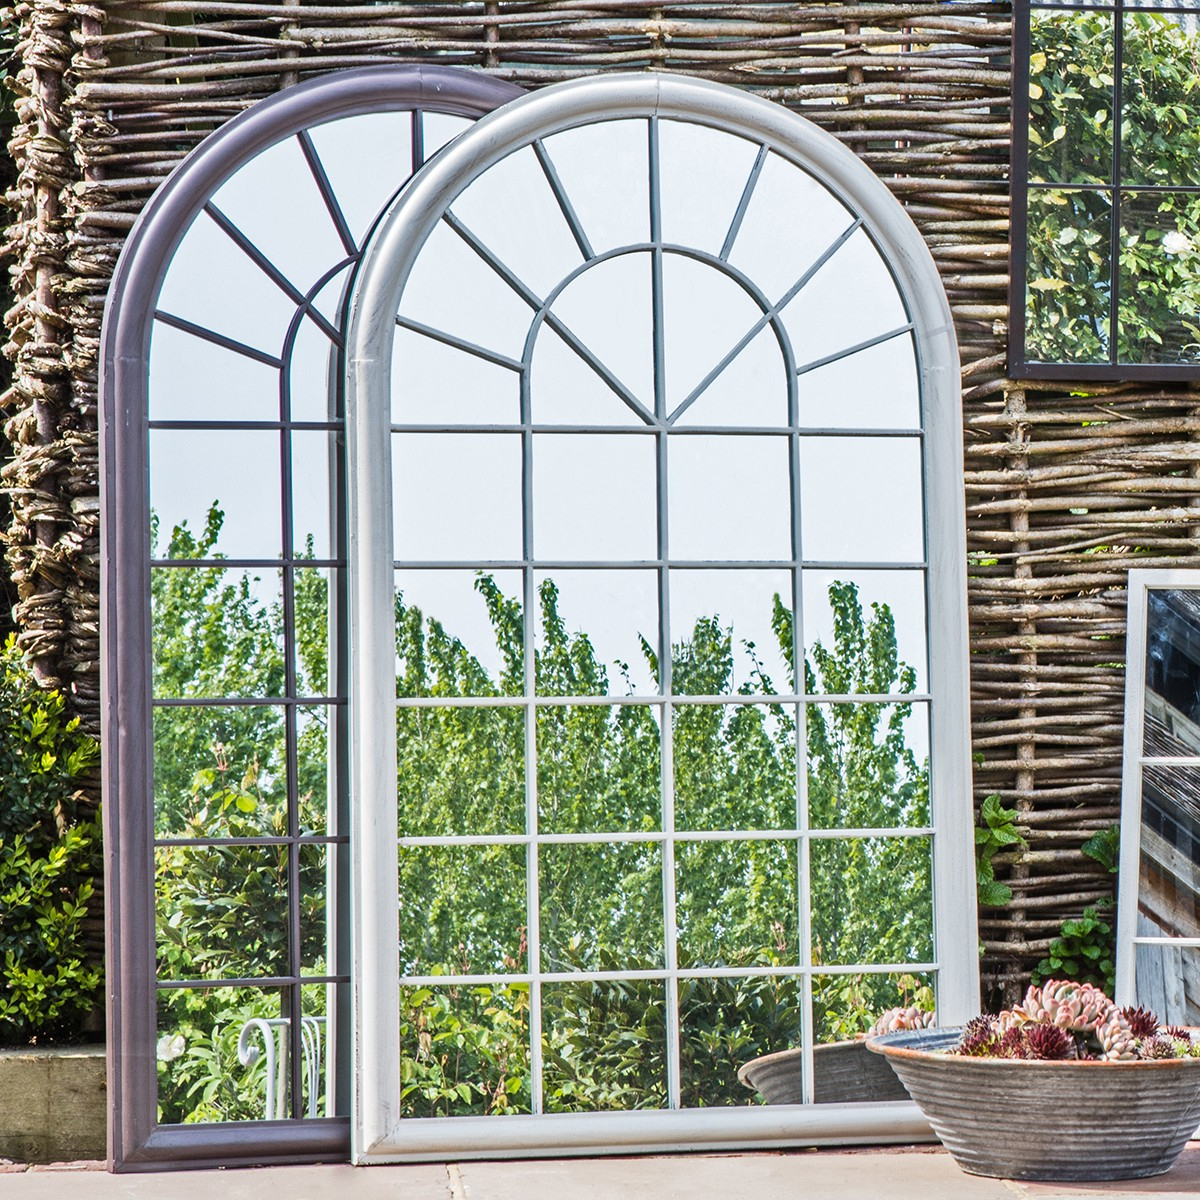 Preferred Rheims Garden Wall Mirror – Alison At Home Intended For Garden Wall Mirrors (View 7 of 20)